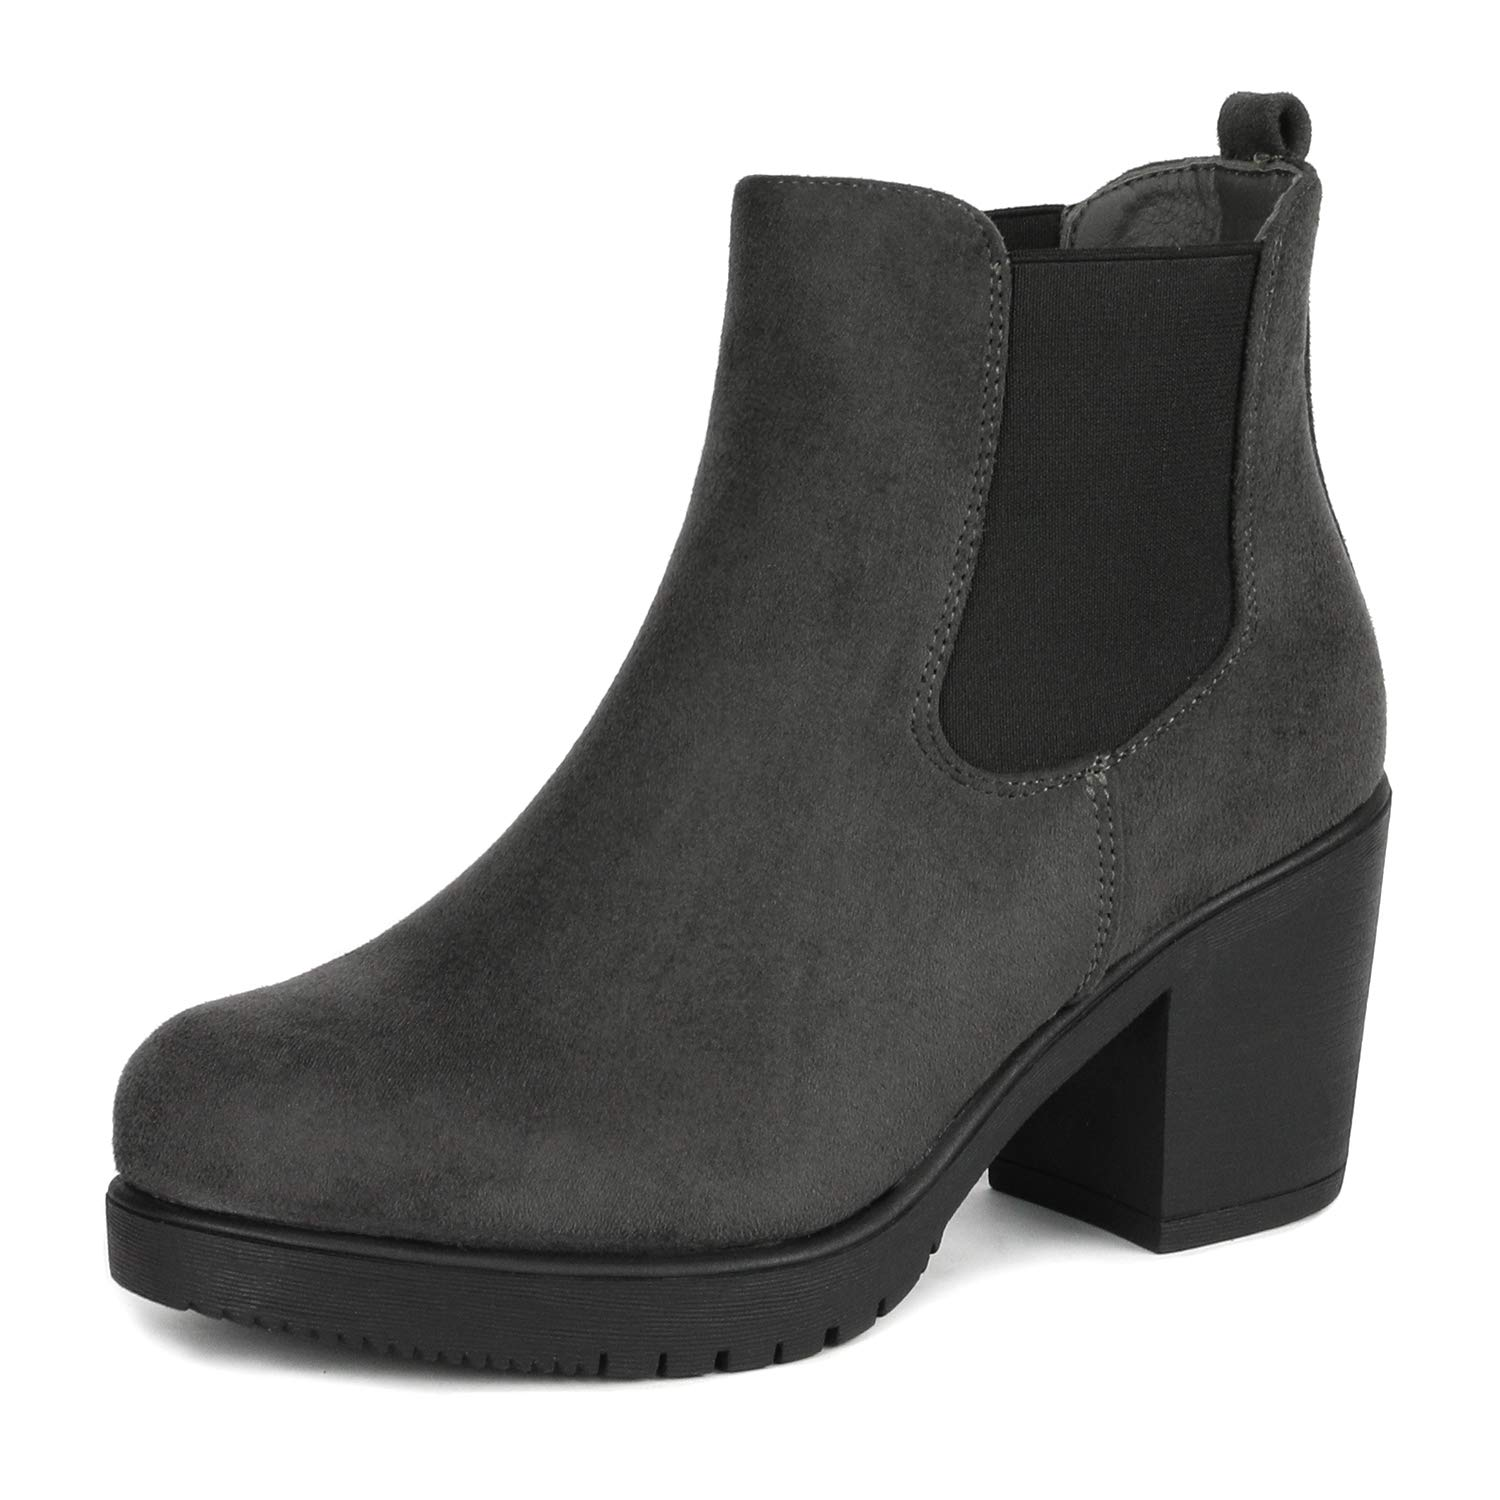 DREAM PAIRS Women's High Heel Ankle Boots